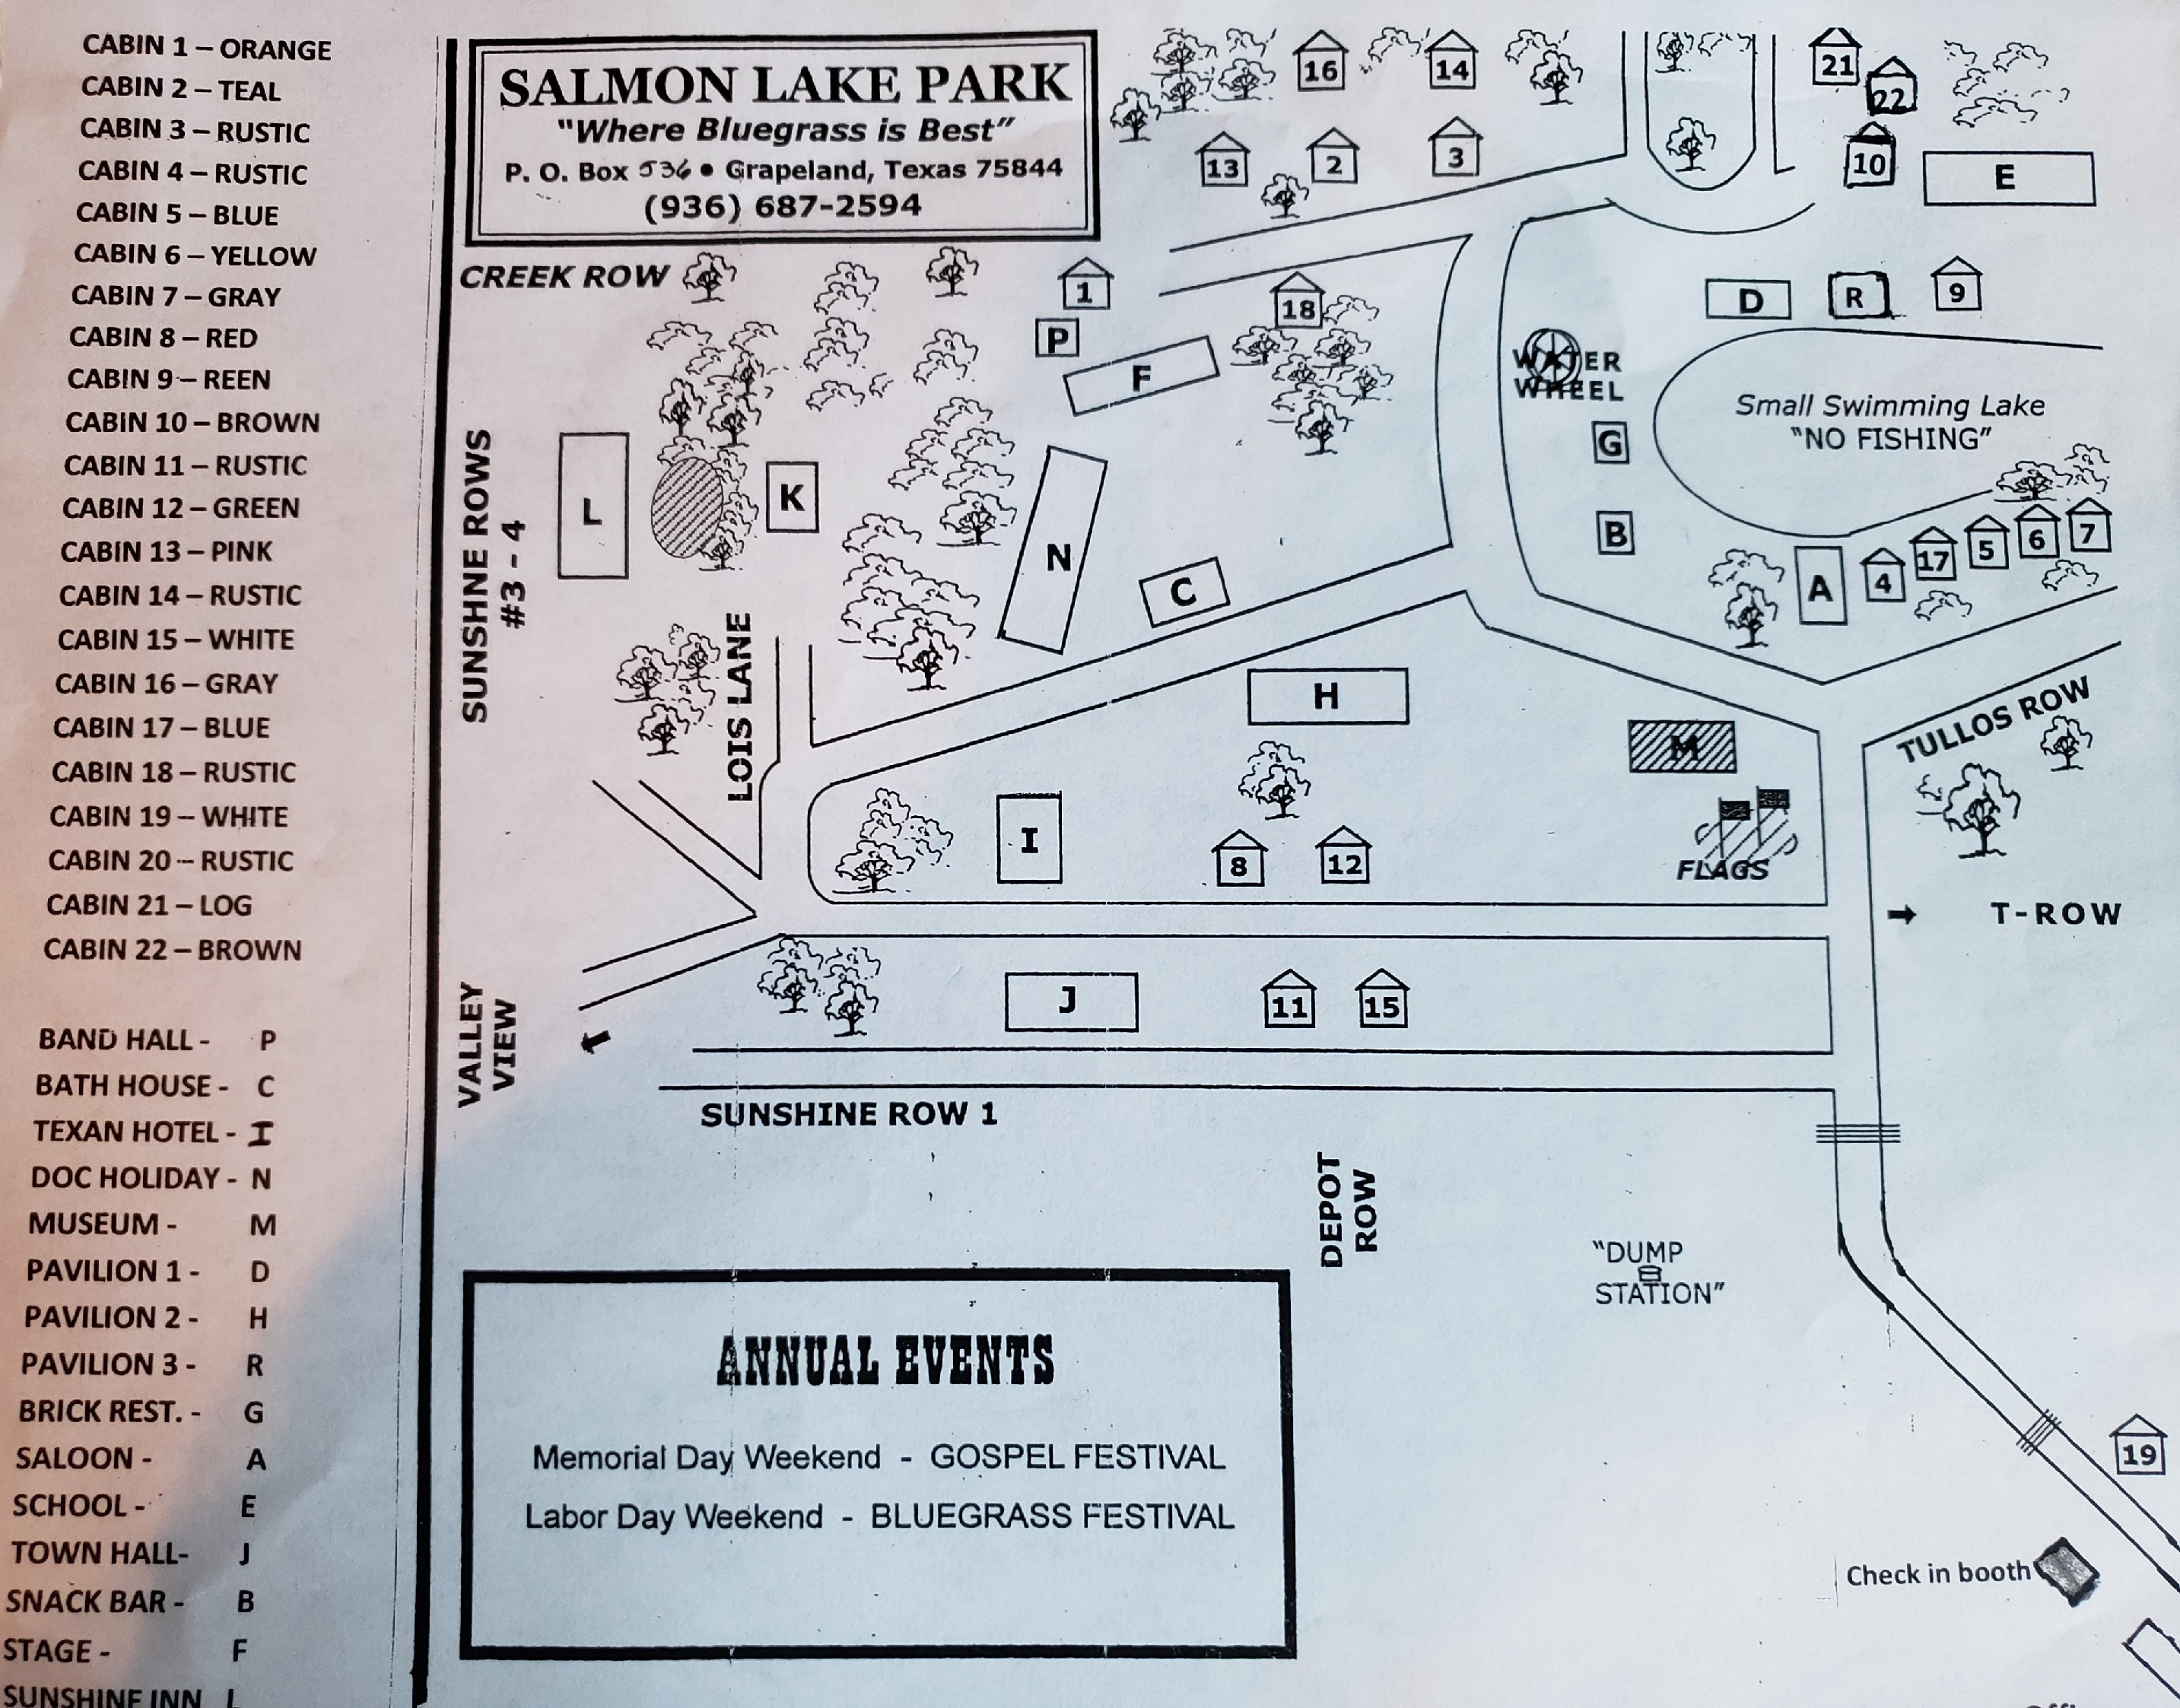 Map of Salmon Lake Park